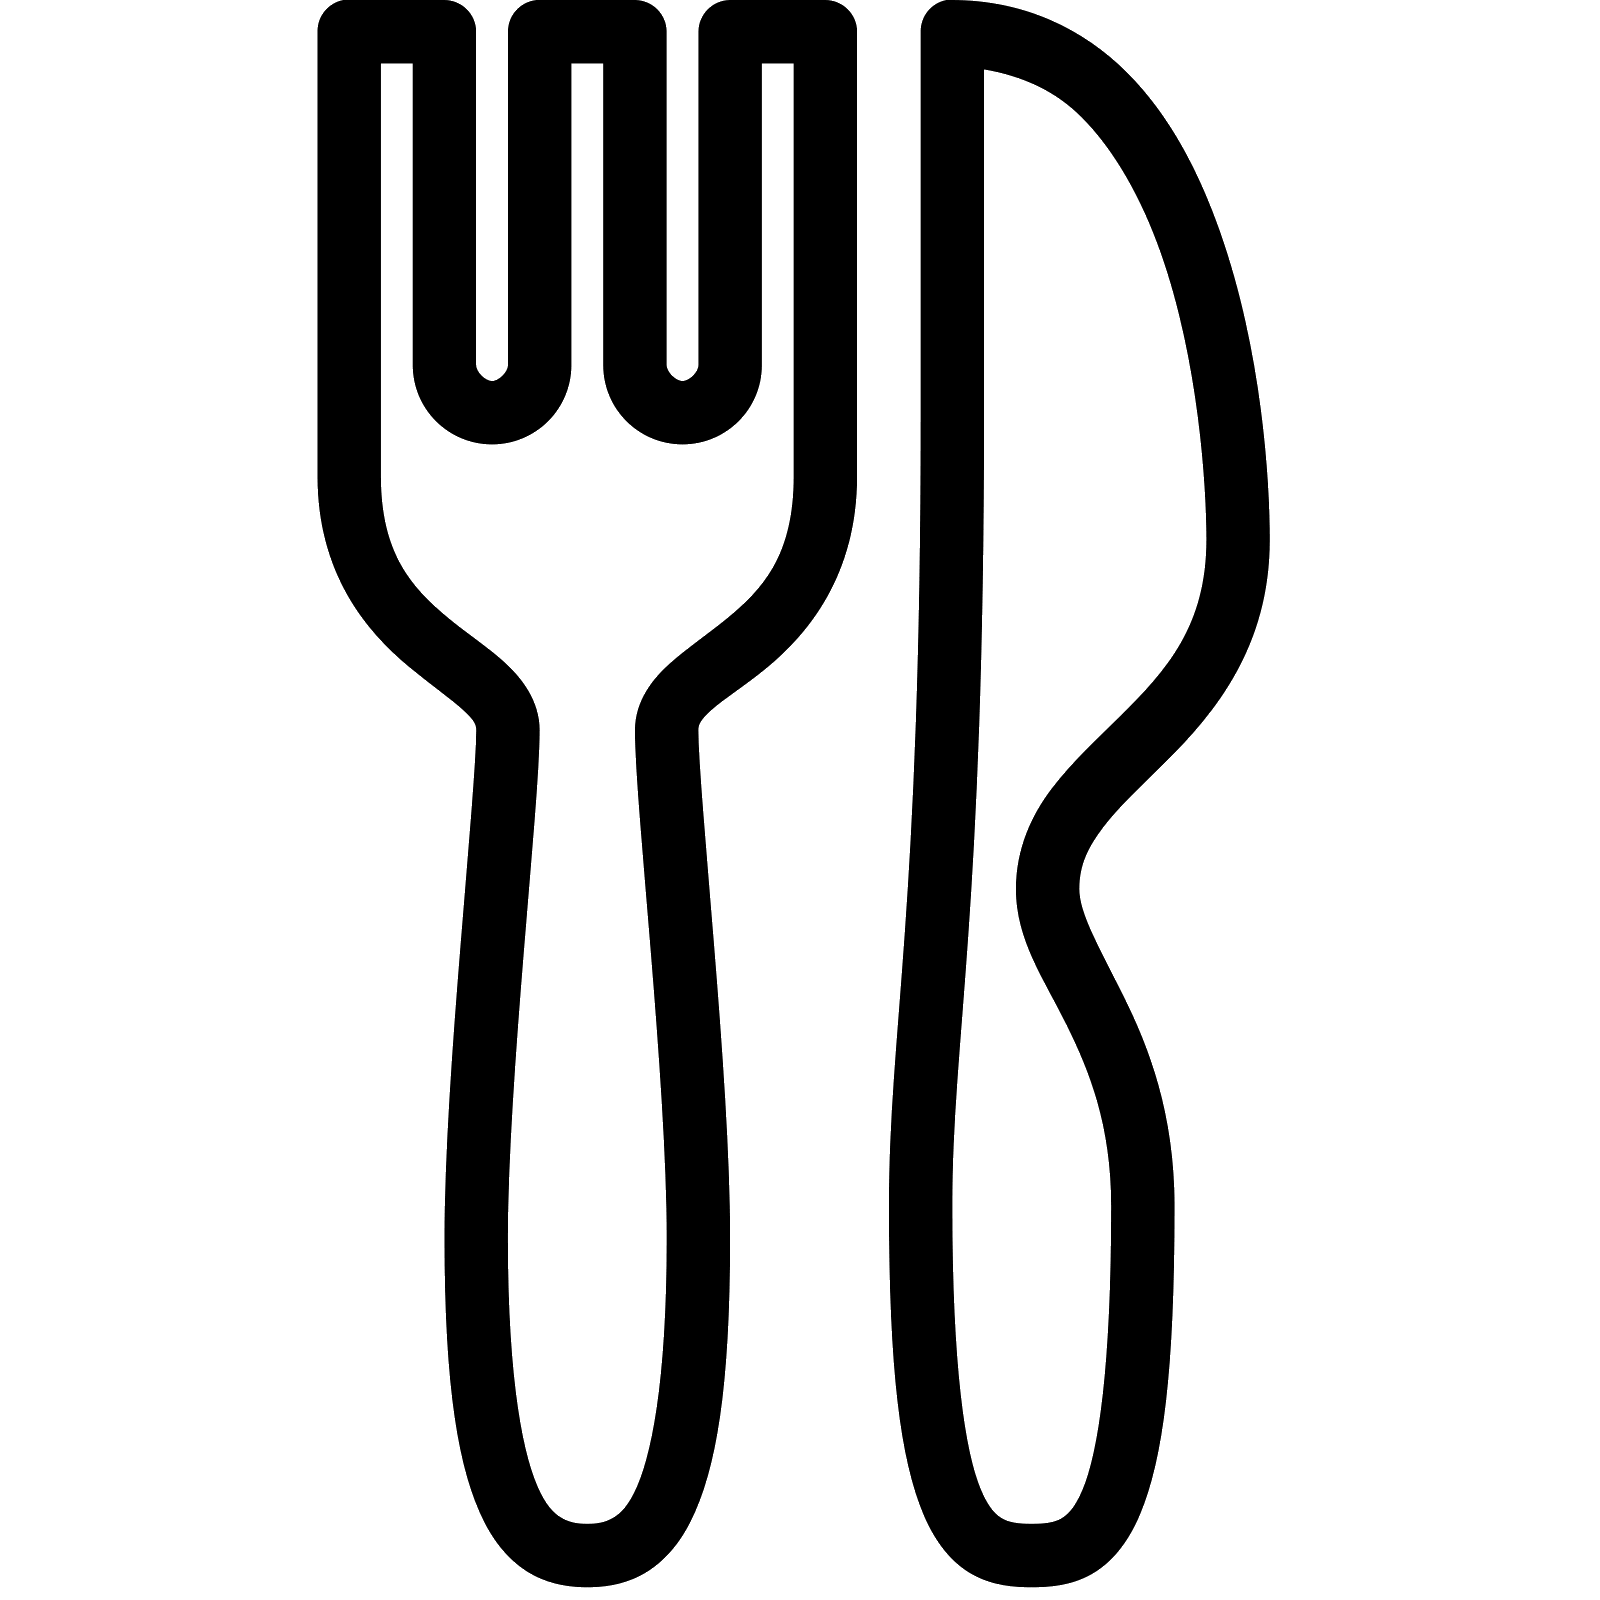 Fork Clipart Cutlery Fork Cutlery Transparent Free For